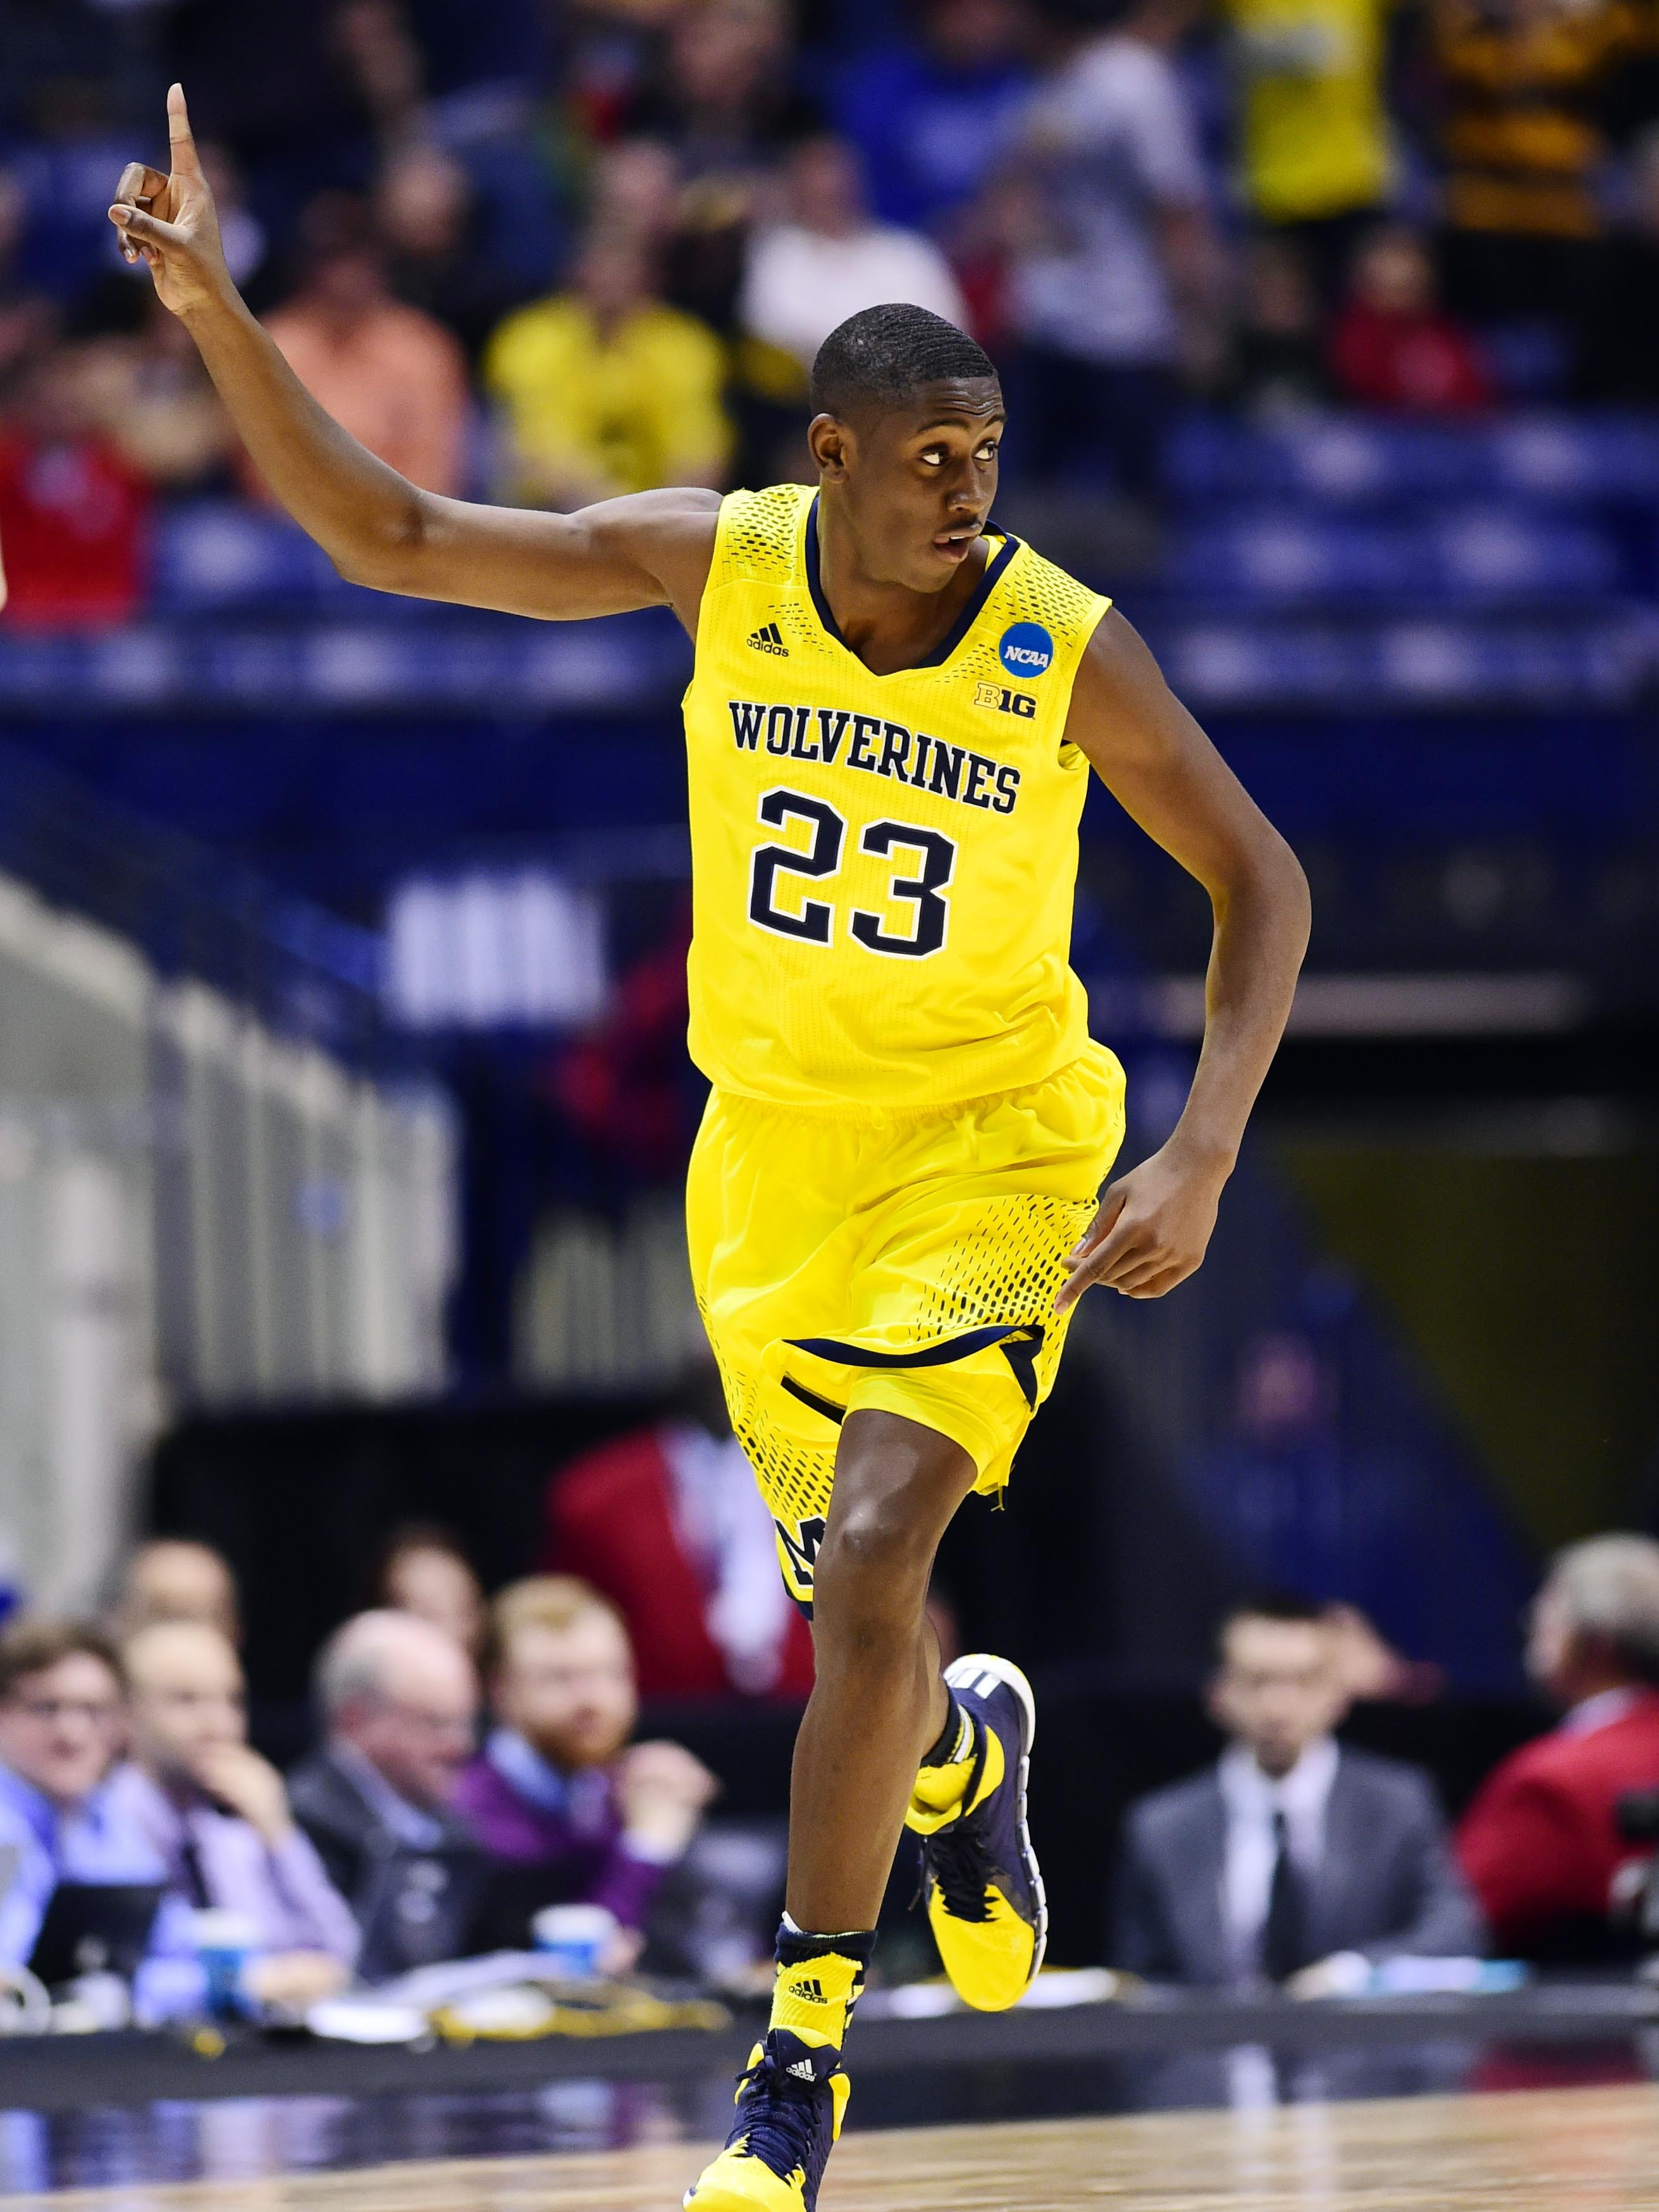 Caris Levert Aims To Be Next Michigan Guard To Step Up